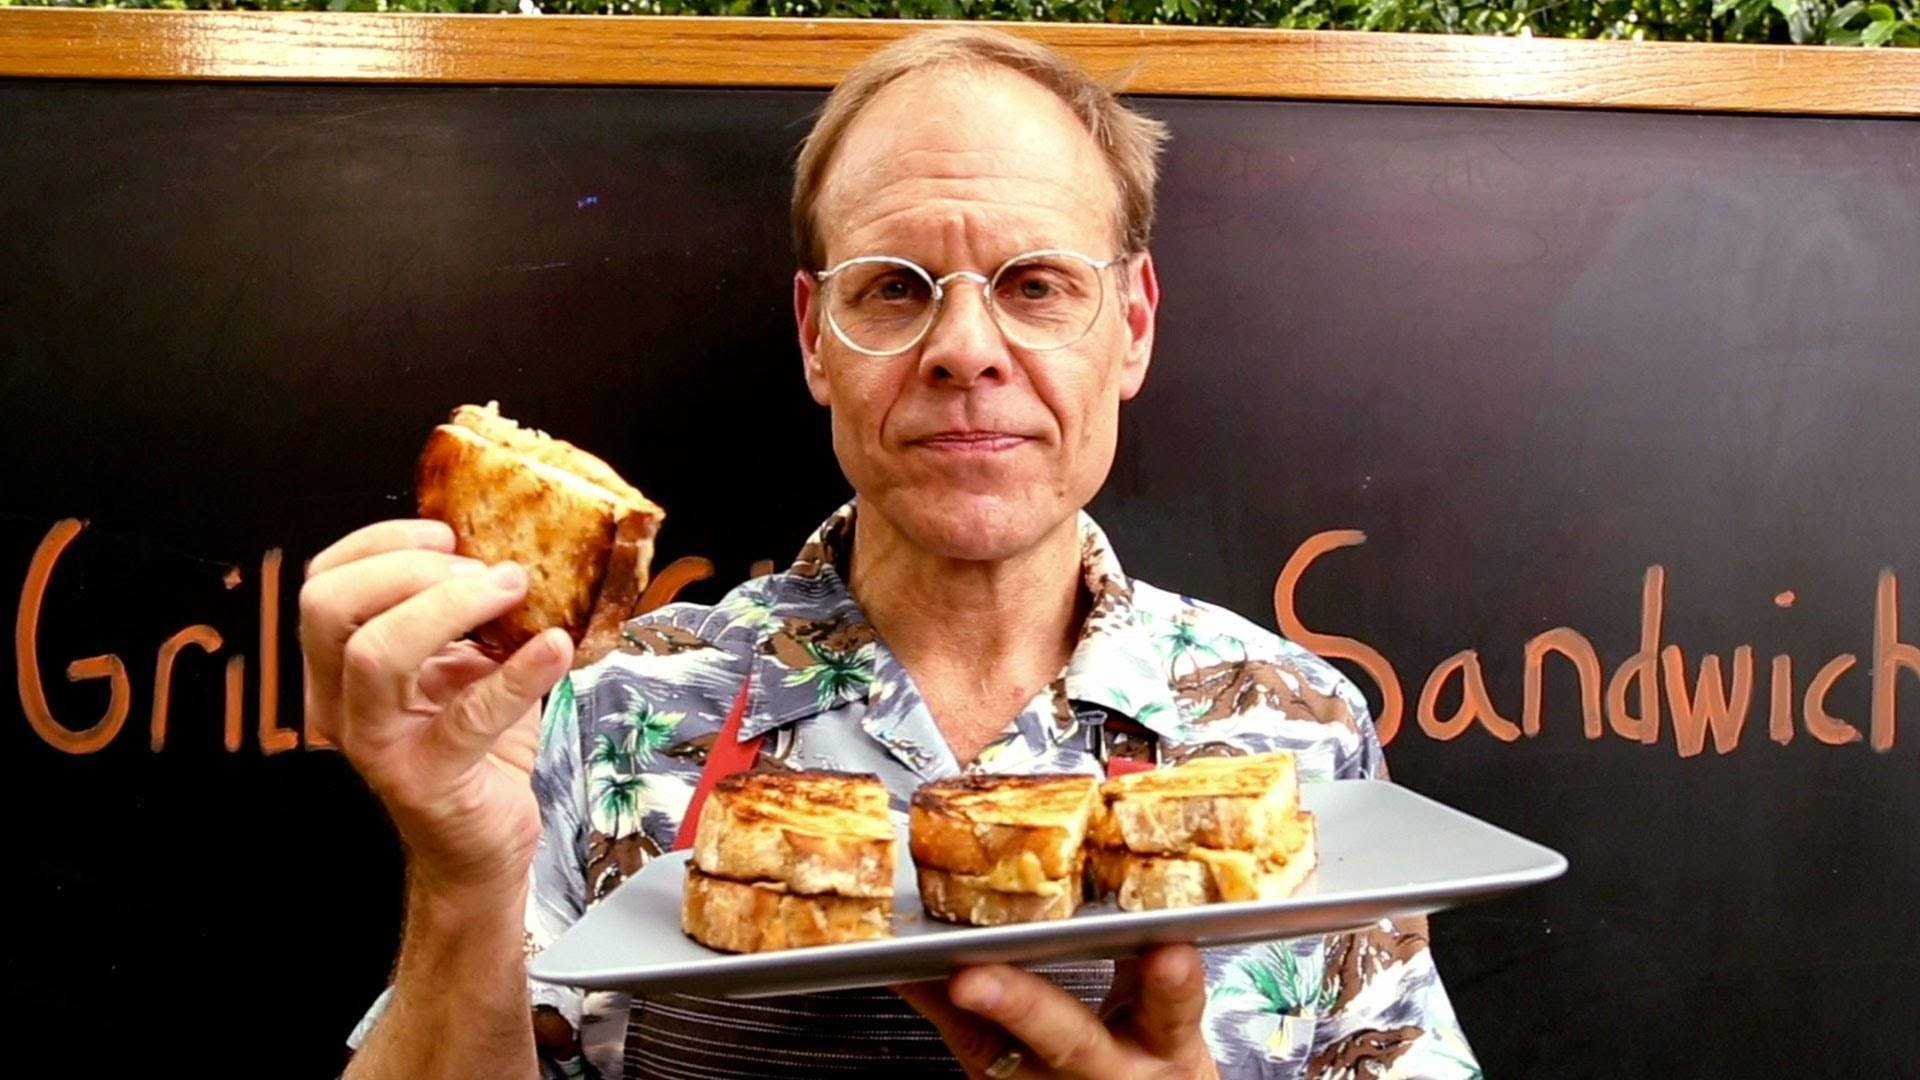 Alton Brown's Delicious Grilled Grilled Cheese